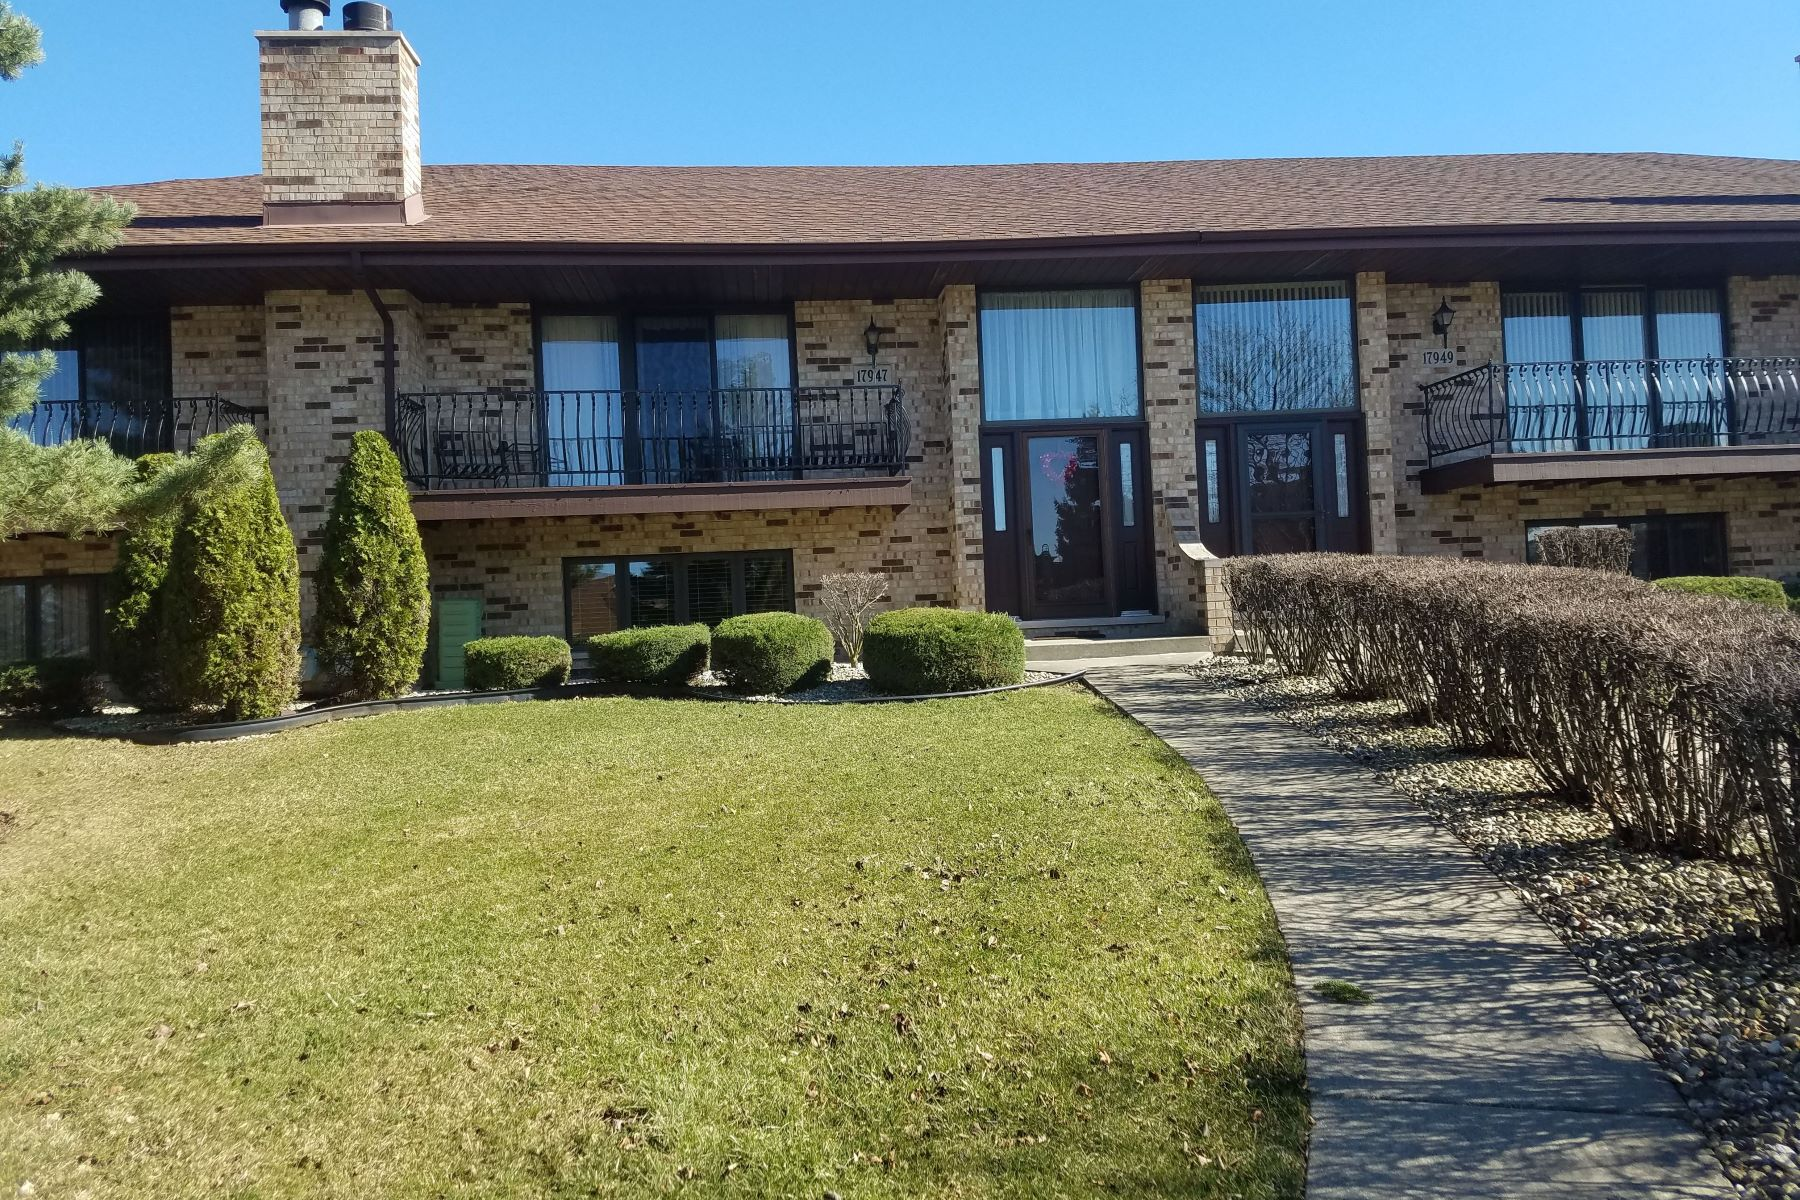 Single Family Home for Sale at 17947 Andrea Drive 17947 Andrea Drive Orland Park, Illinois 60462 United States